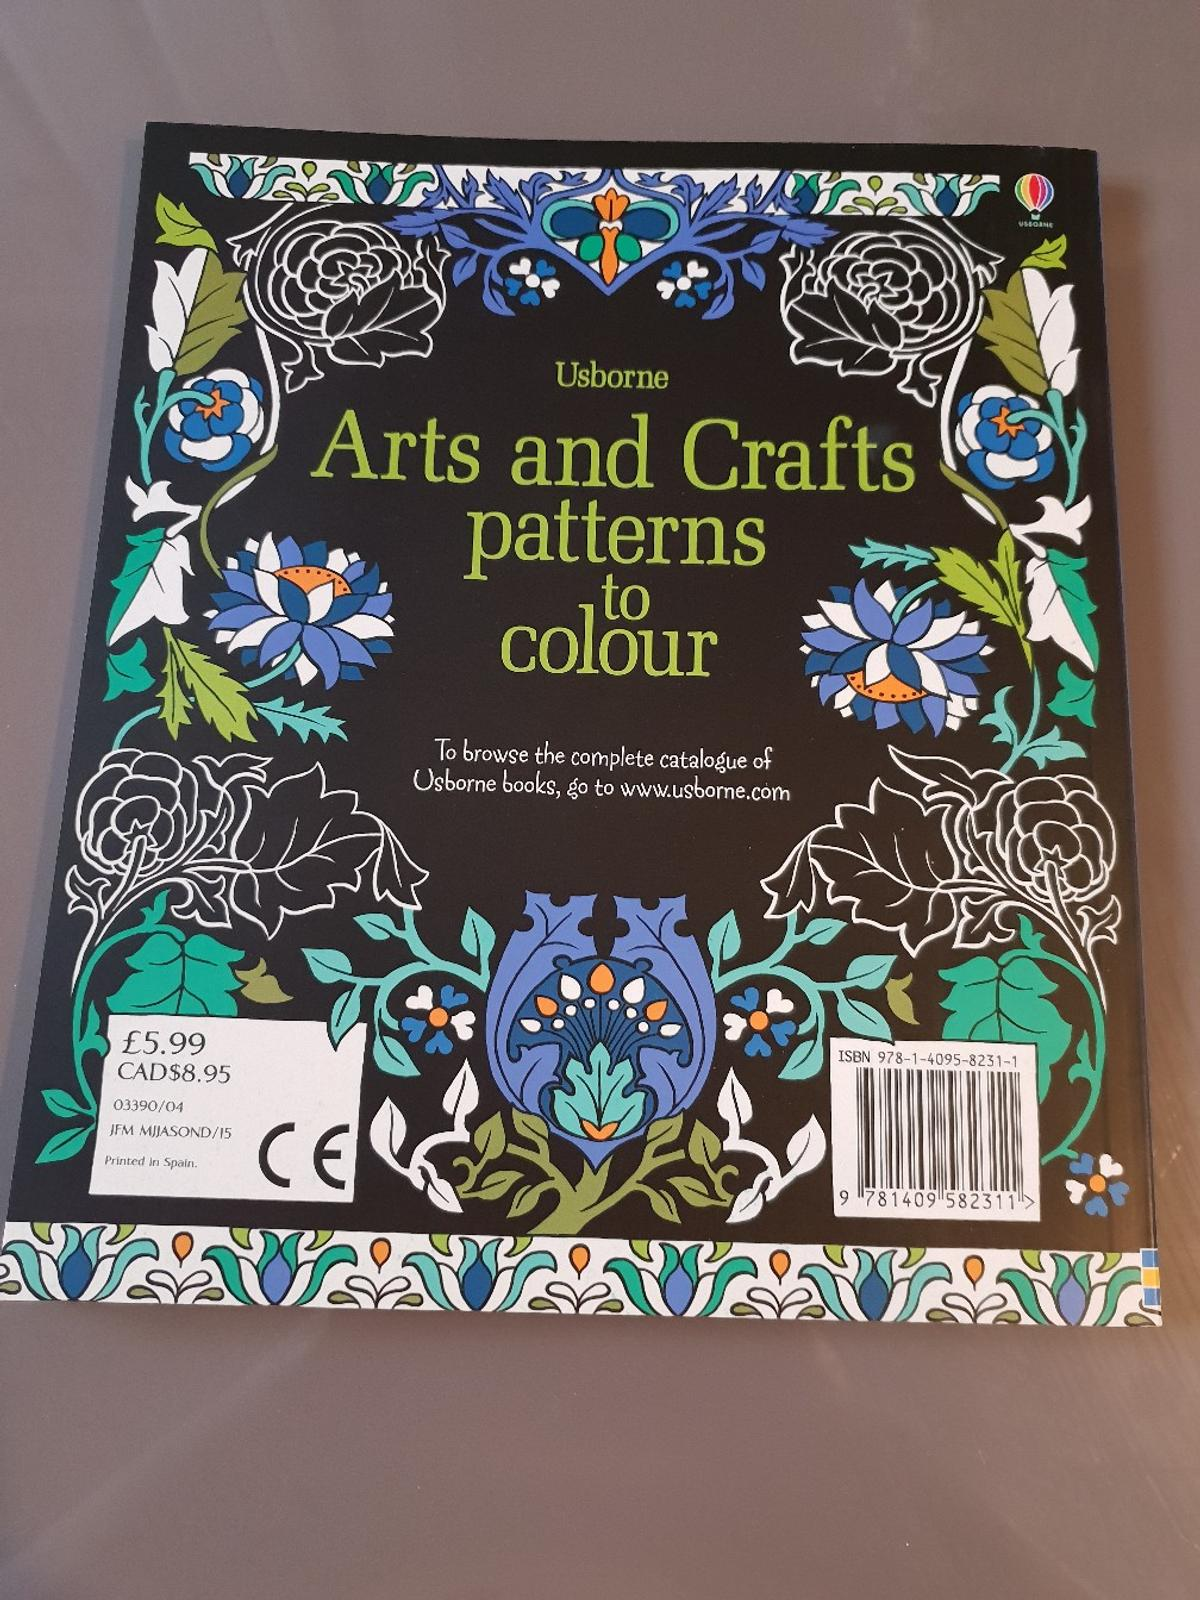 Beautiful item and the pages are well presented.  not yet use-brand new  collection, can deliver of local, post if customer is willing to pay postage costs